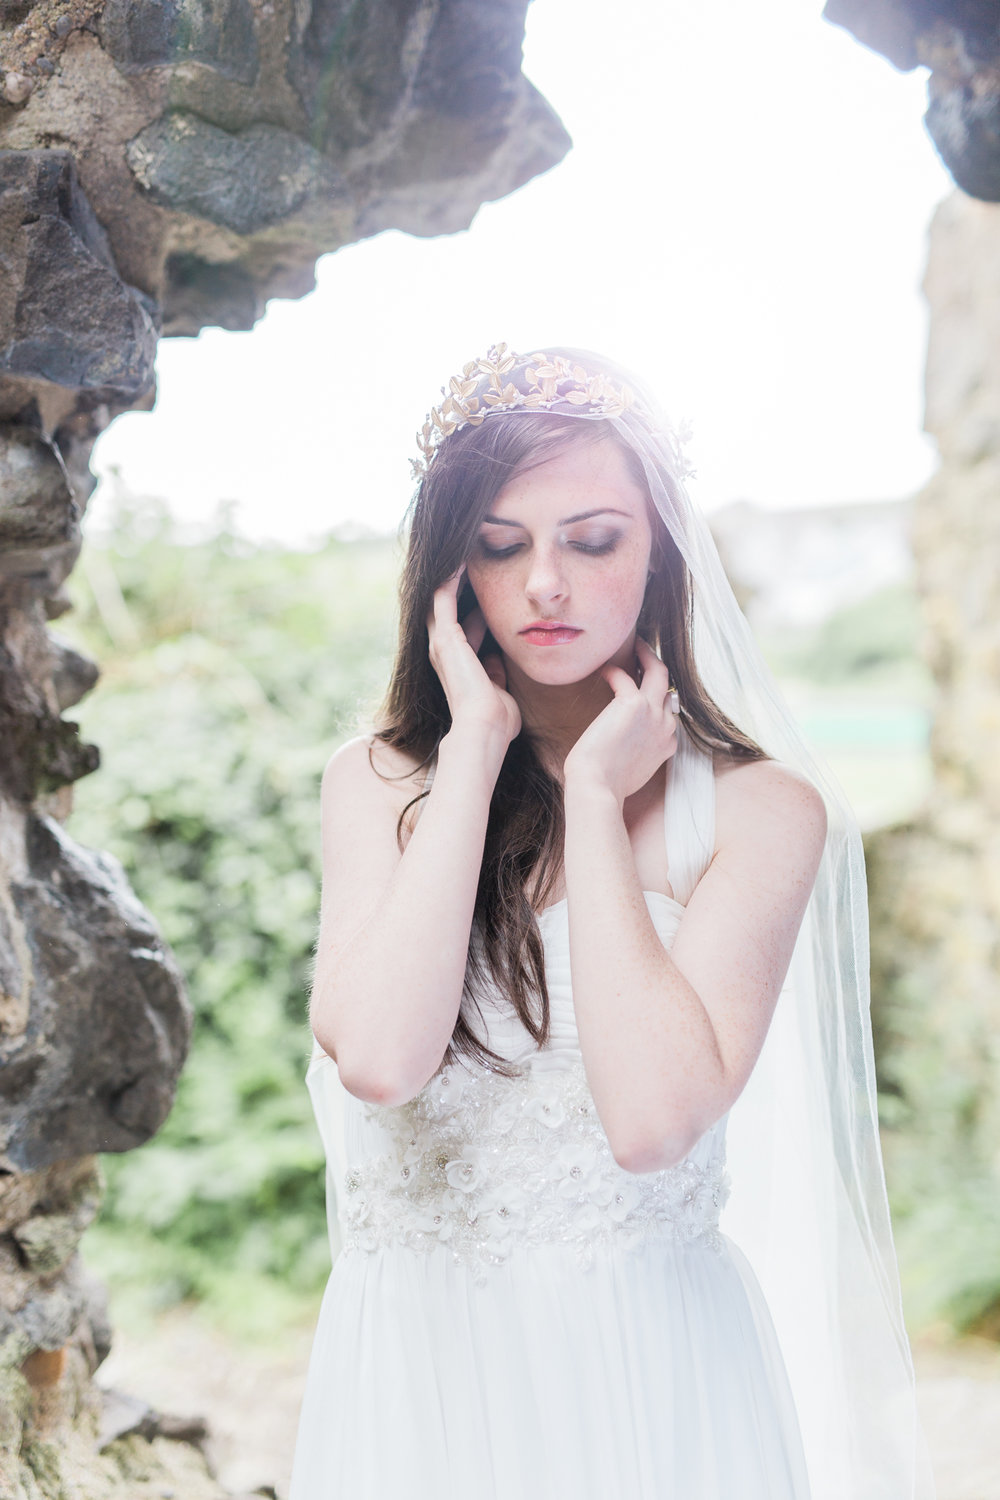 suzanne_li_photography_BRIDAL_SHOOT_SCOTLAND-10.jpg